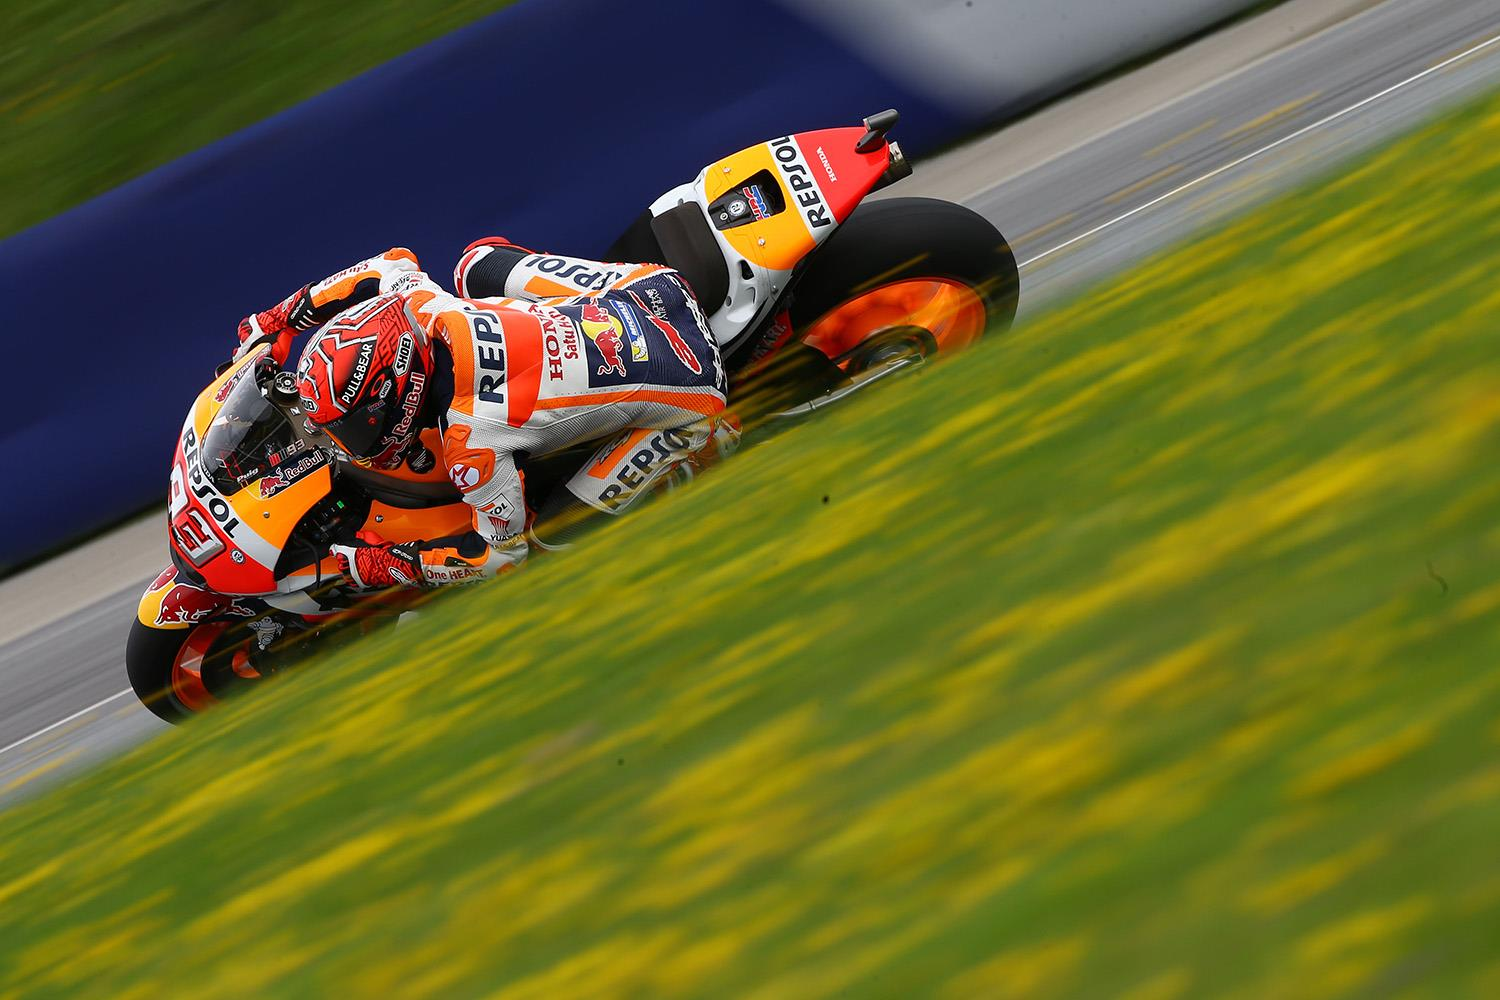 MotoGP Marquez blitzes the opposition for Red Bull Ring pole